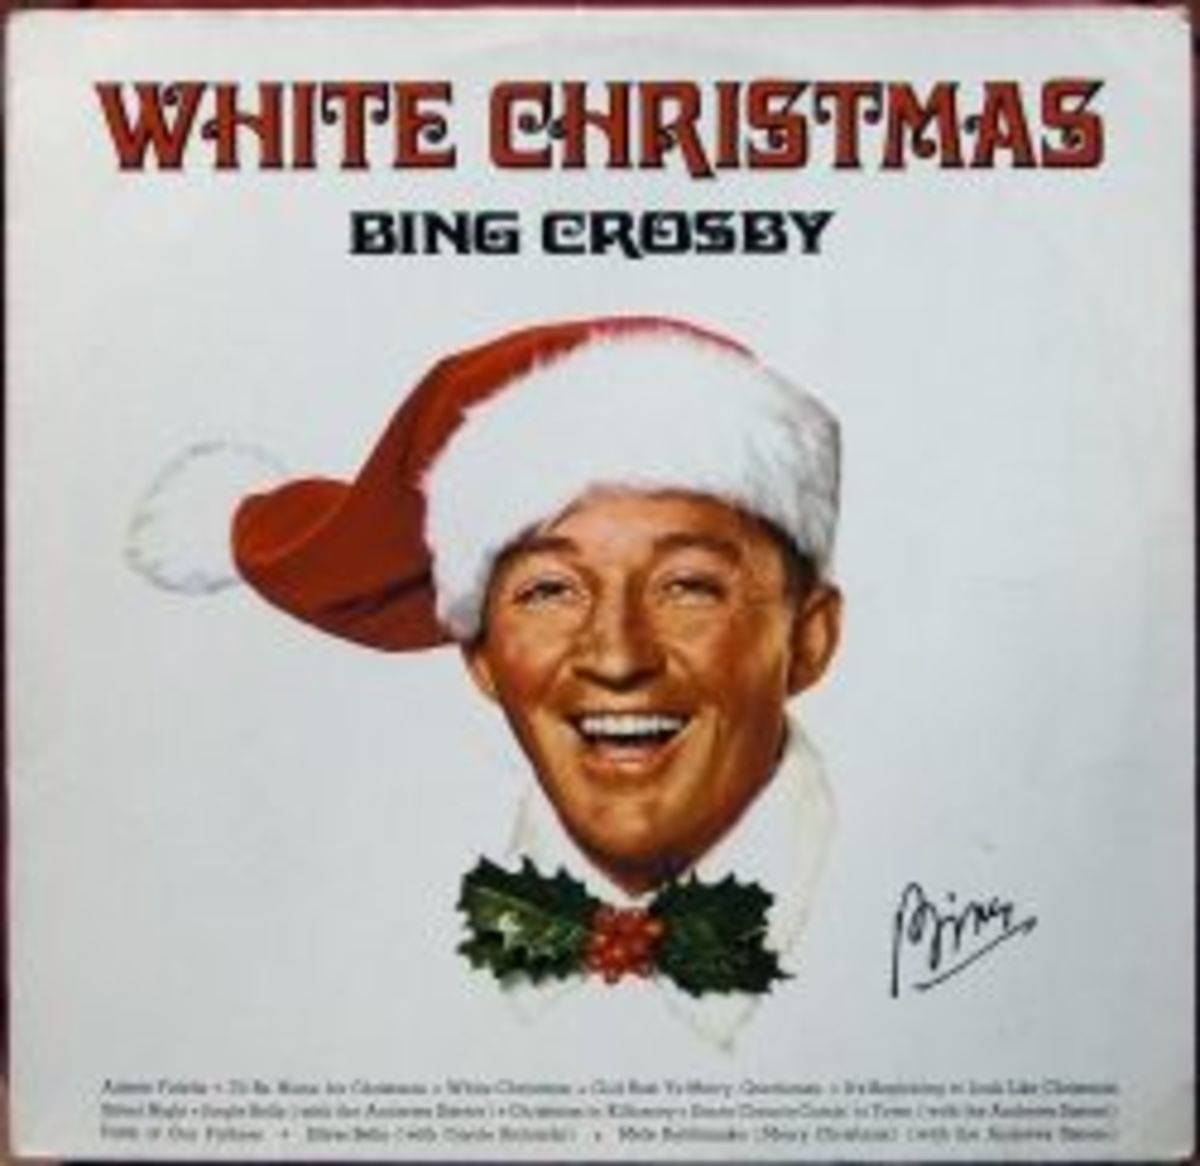 Bing Crosby's most famous Christmas album, White Christmas